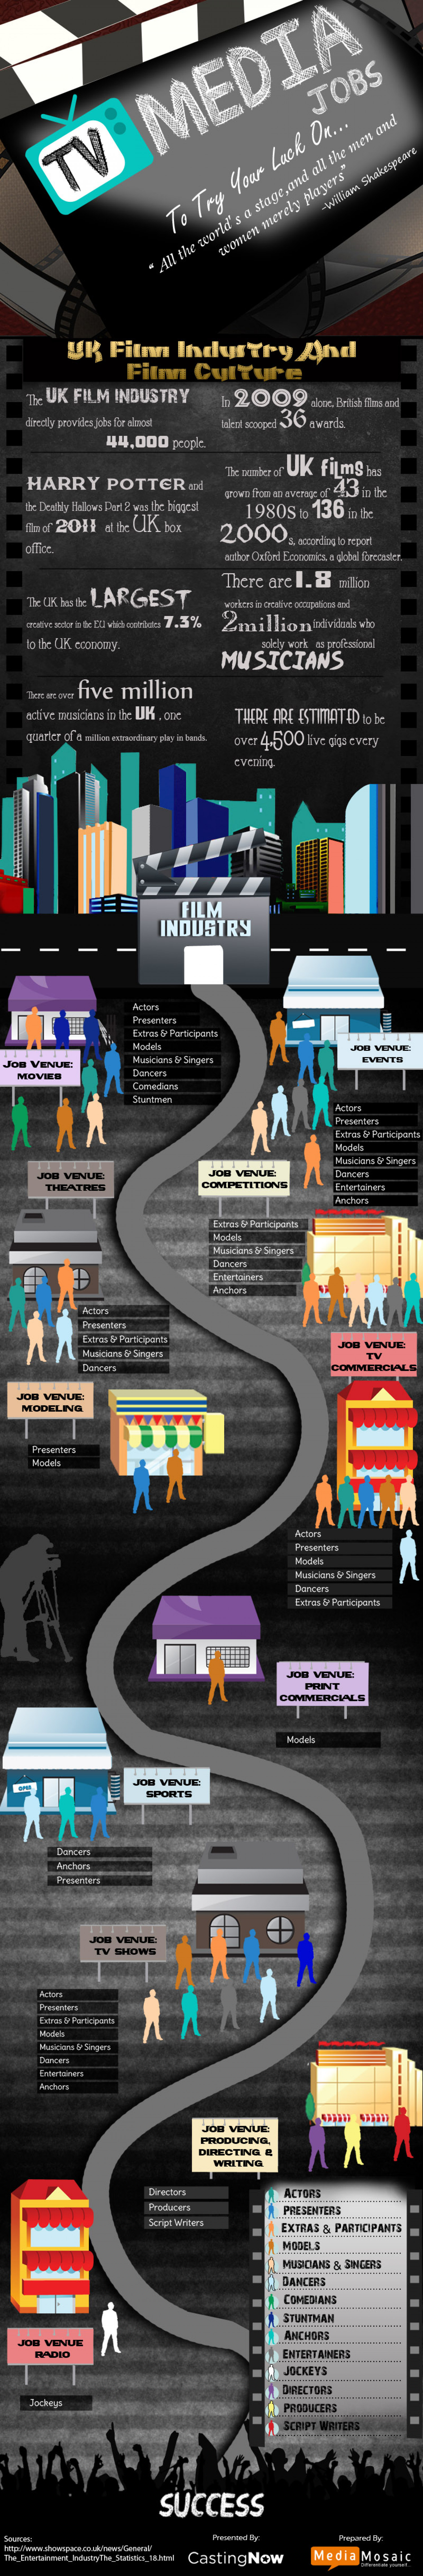 TV Media Jobs: To Try Your Luck On Infographic